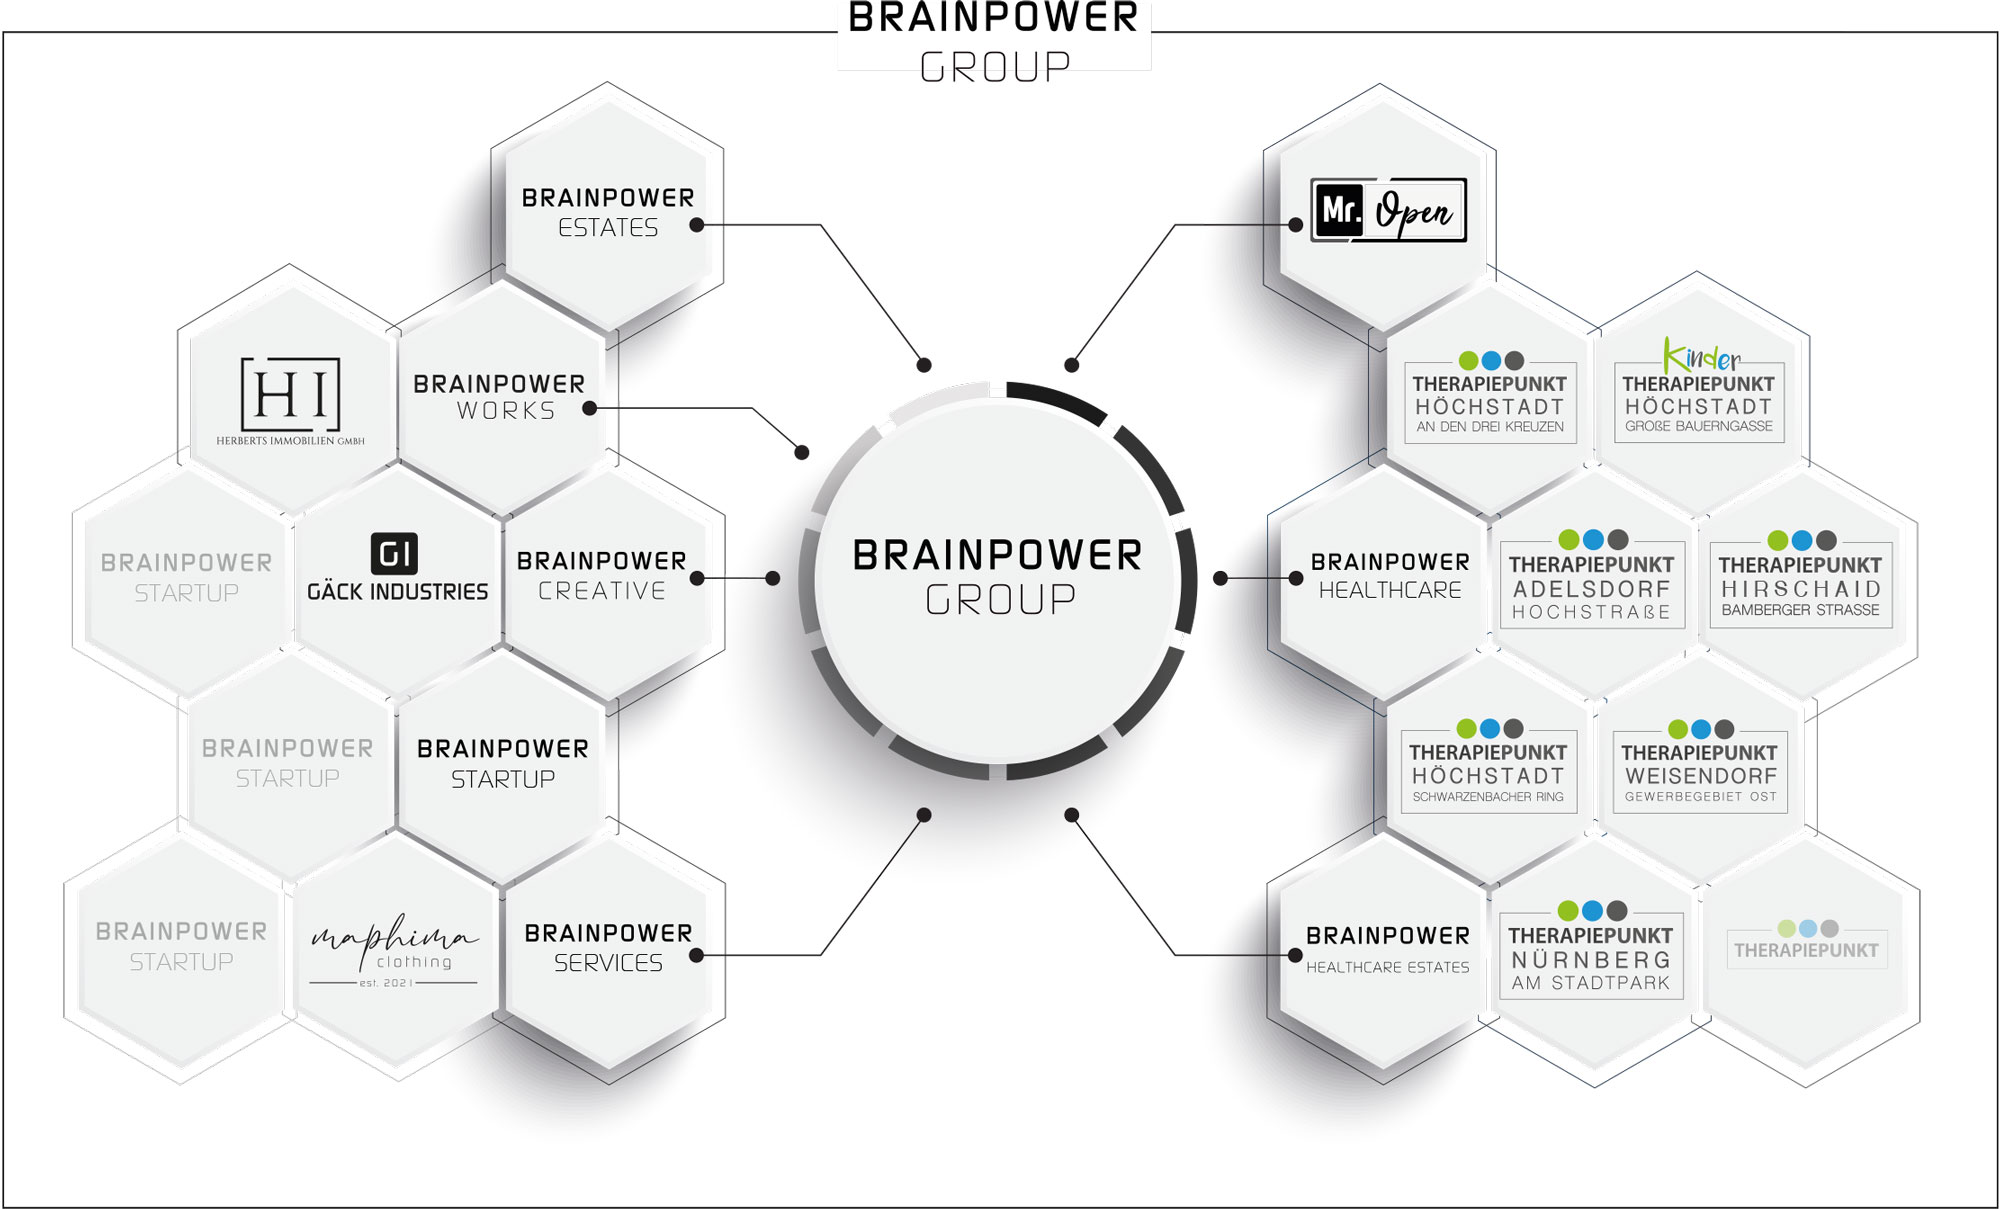 BRAINPOWER GROUP